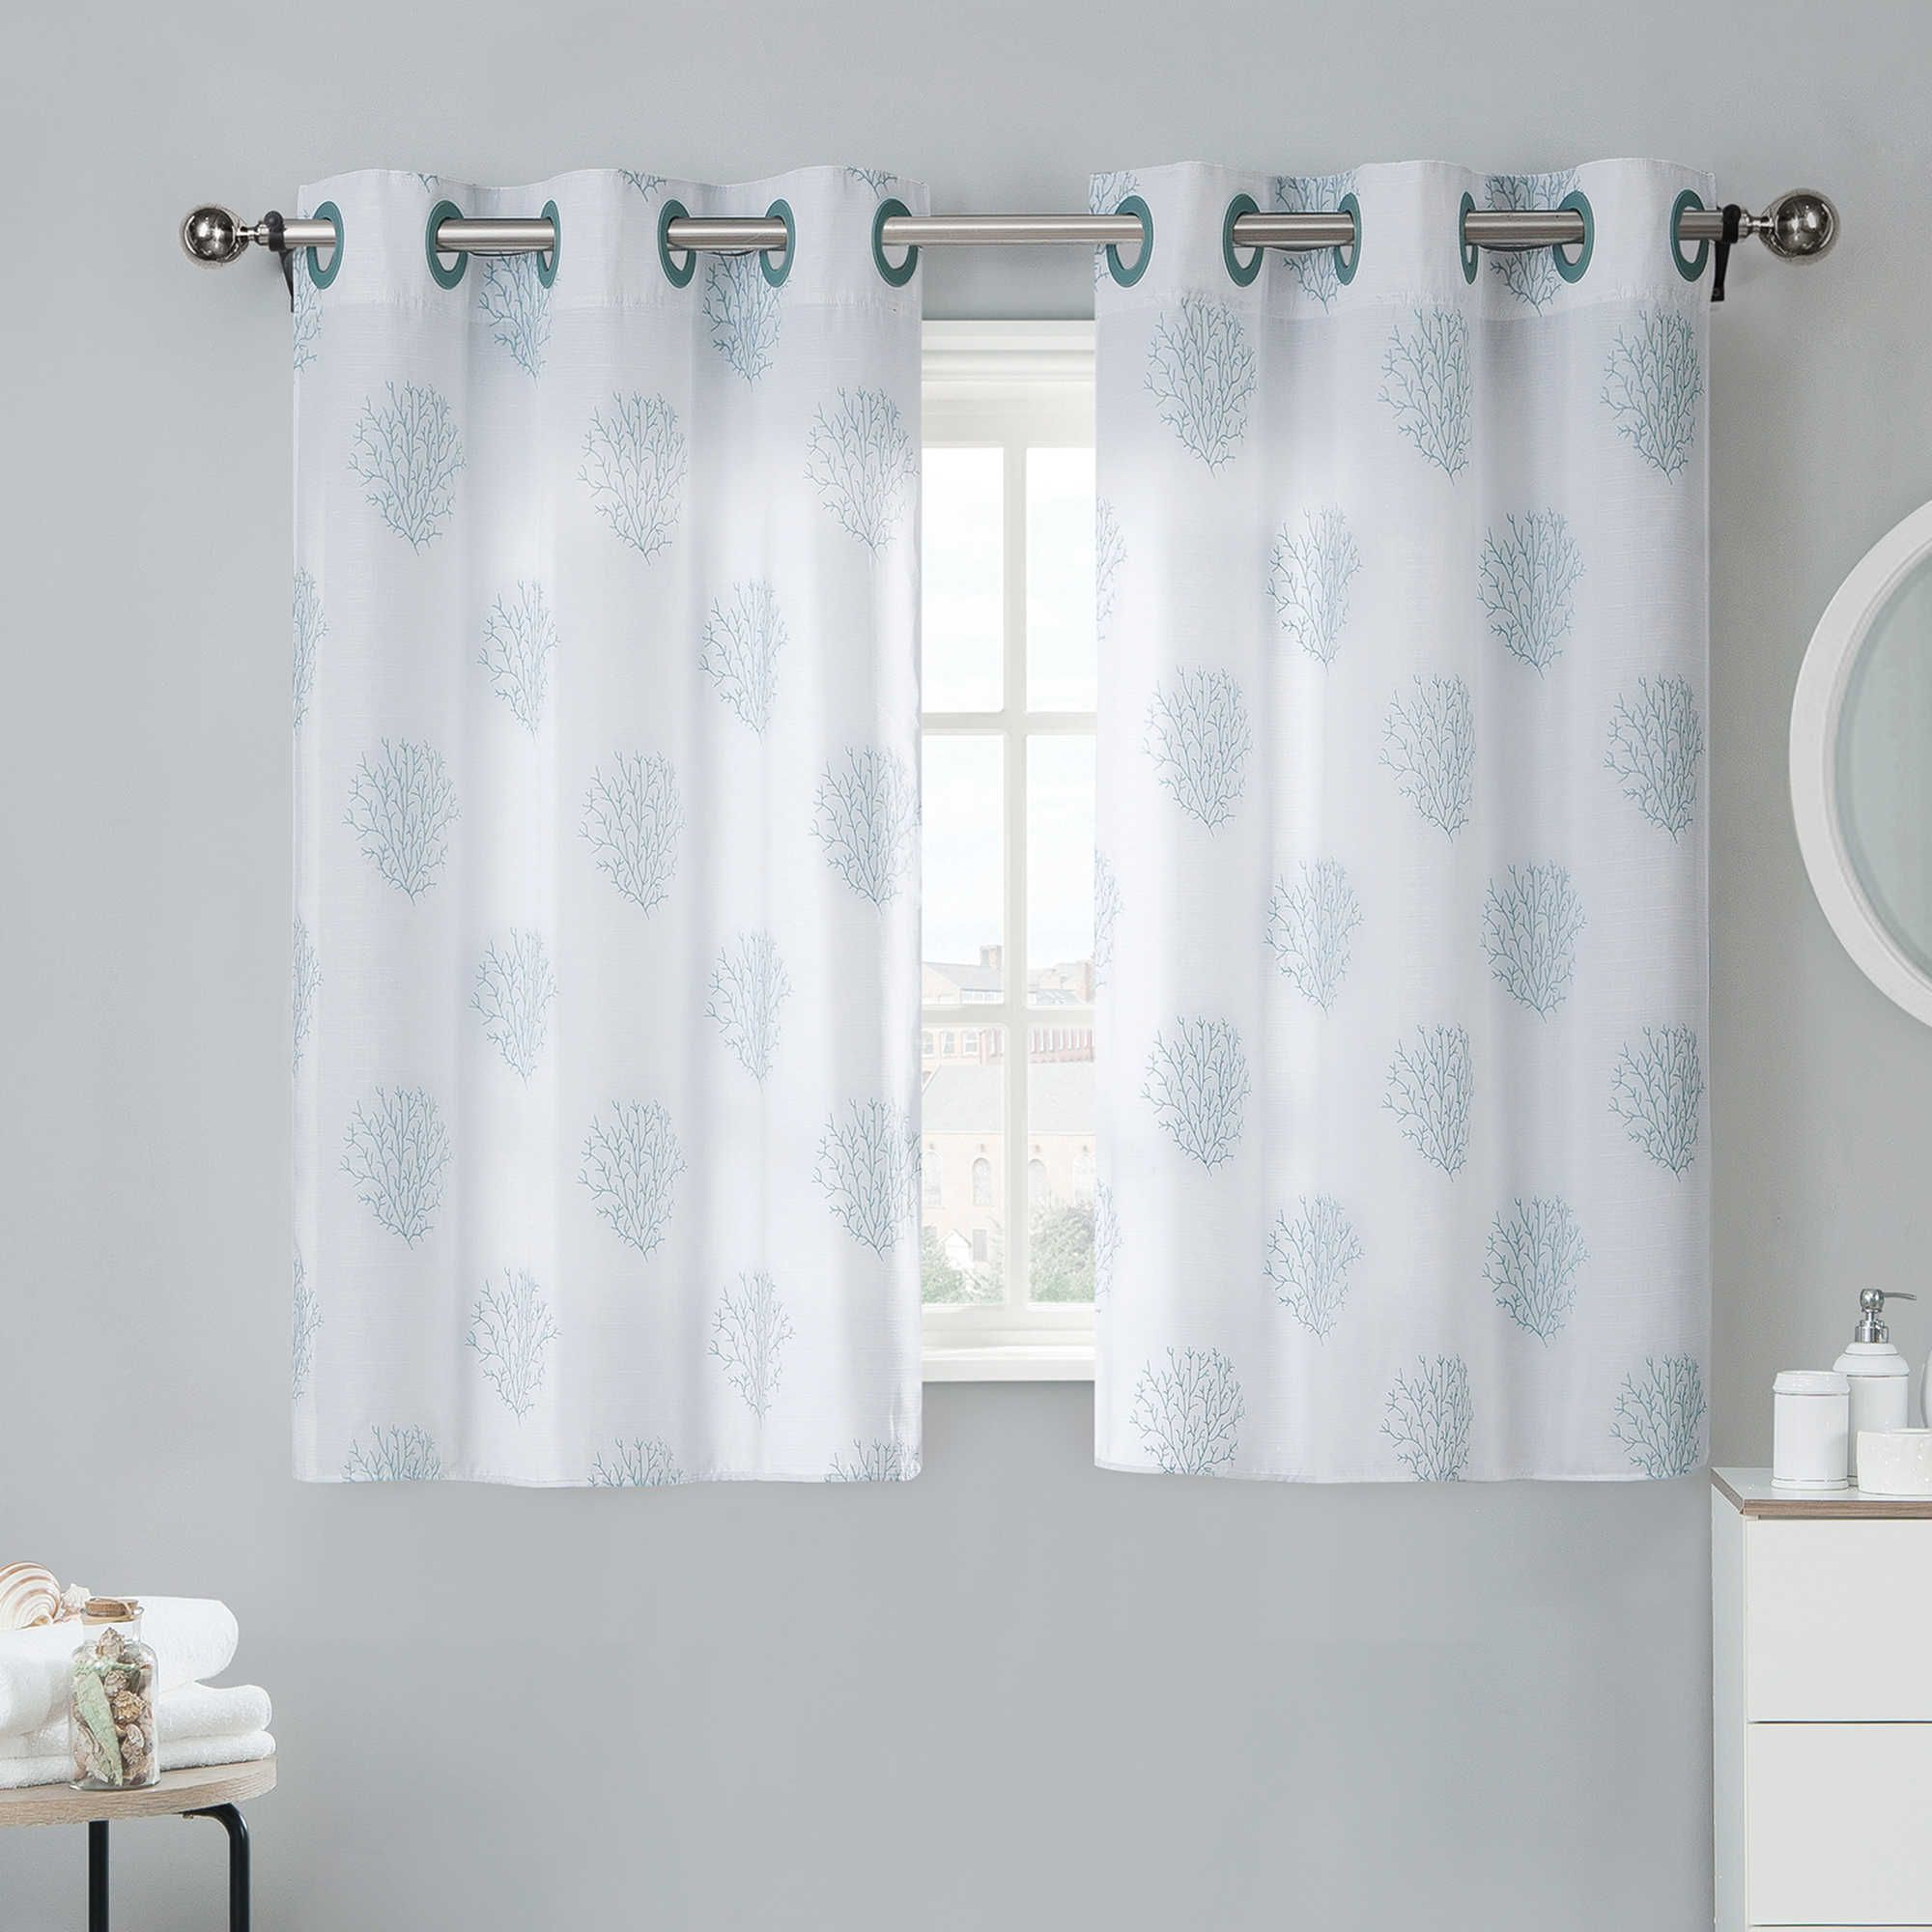 Coral Reef 38 Inch Bath Window Curtain Tier Pair In Grey Mist Small Window Curtains Small Bathroom Window Bathroom Curtains